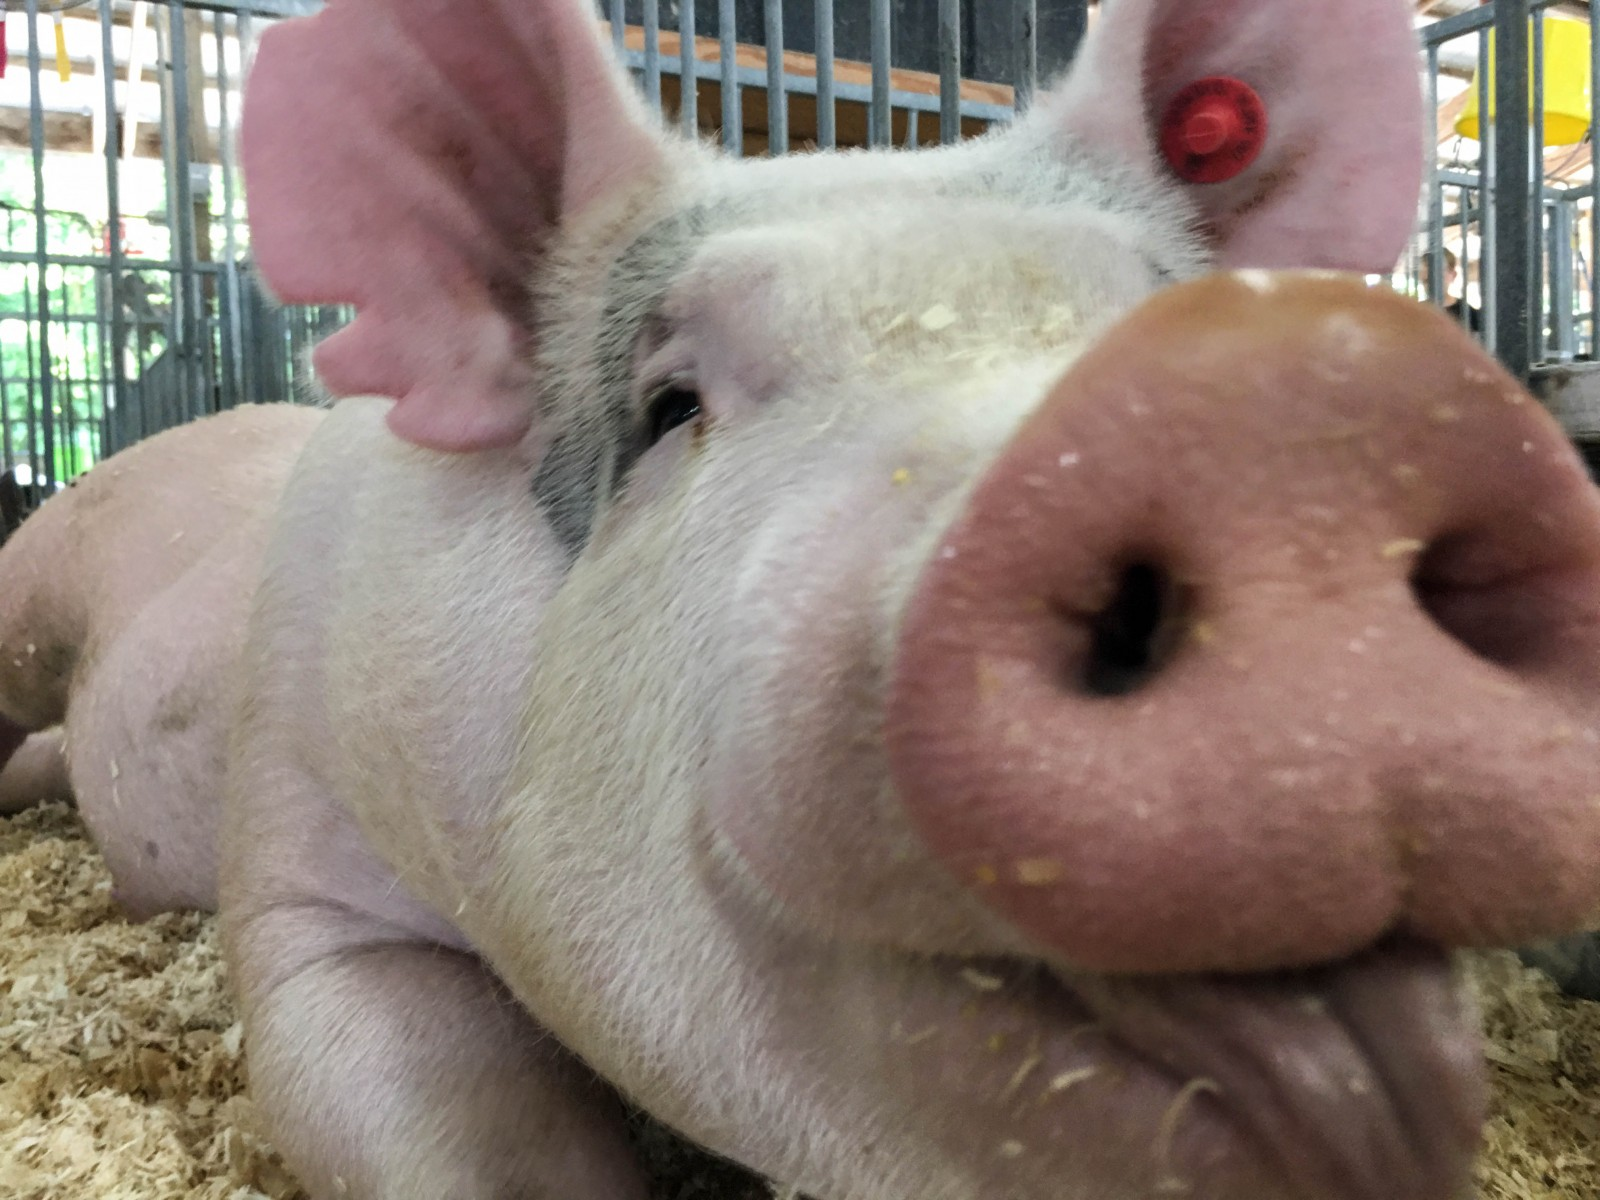 Researchers swab pig snouts to test for the flu virus.